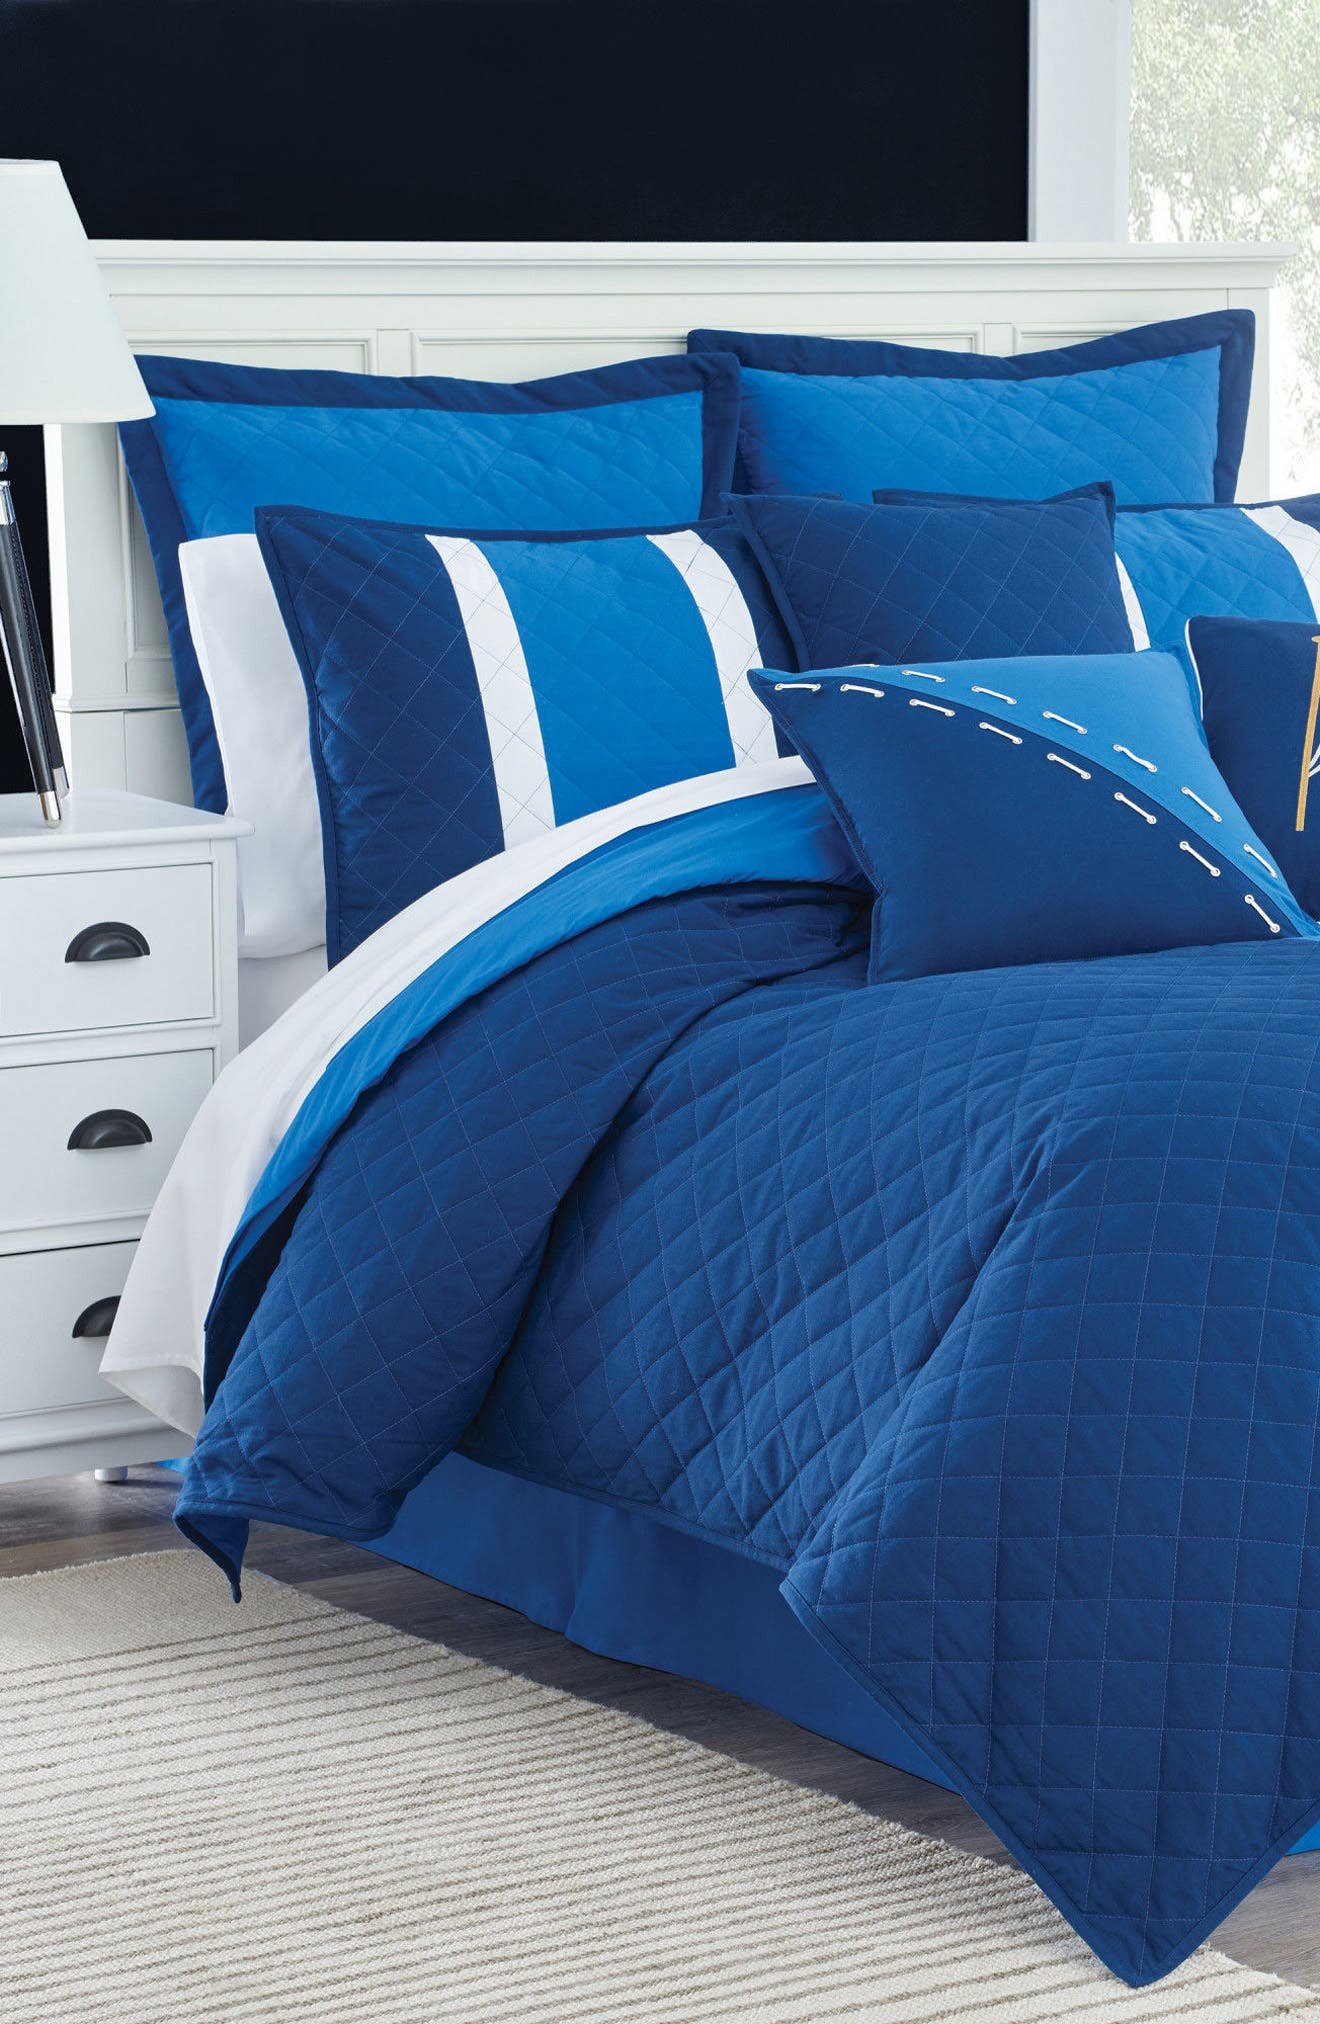 Main Image - Southern Tide Yacht Club Comforter, Sham & Bed Skirt Set